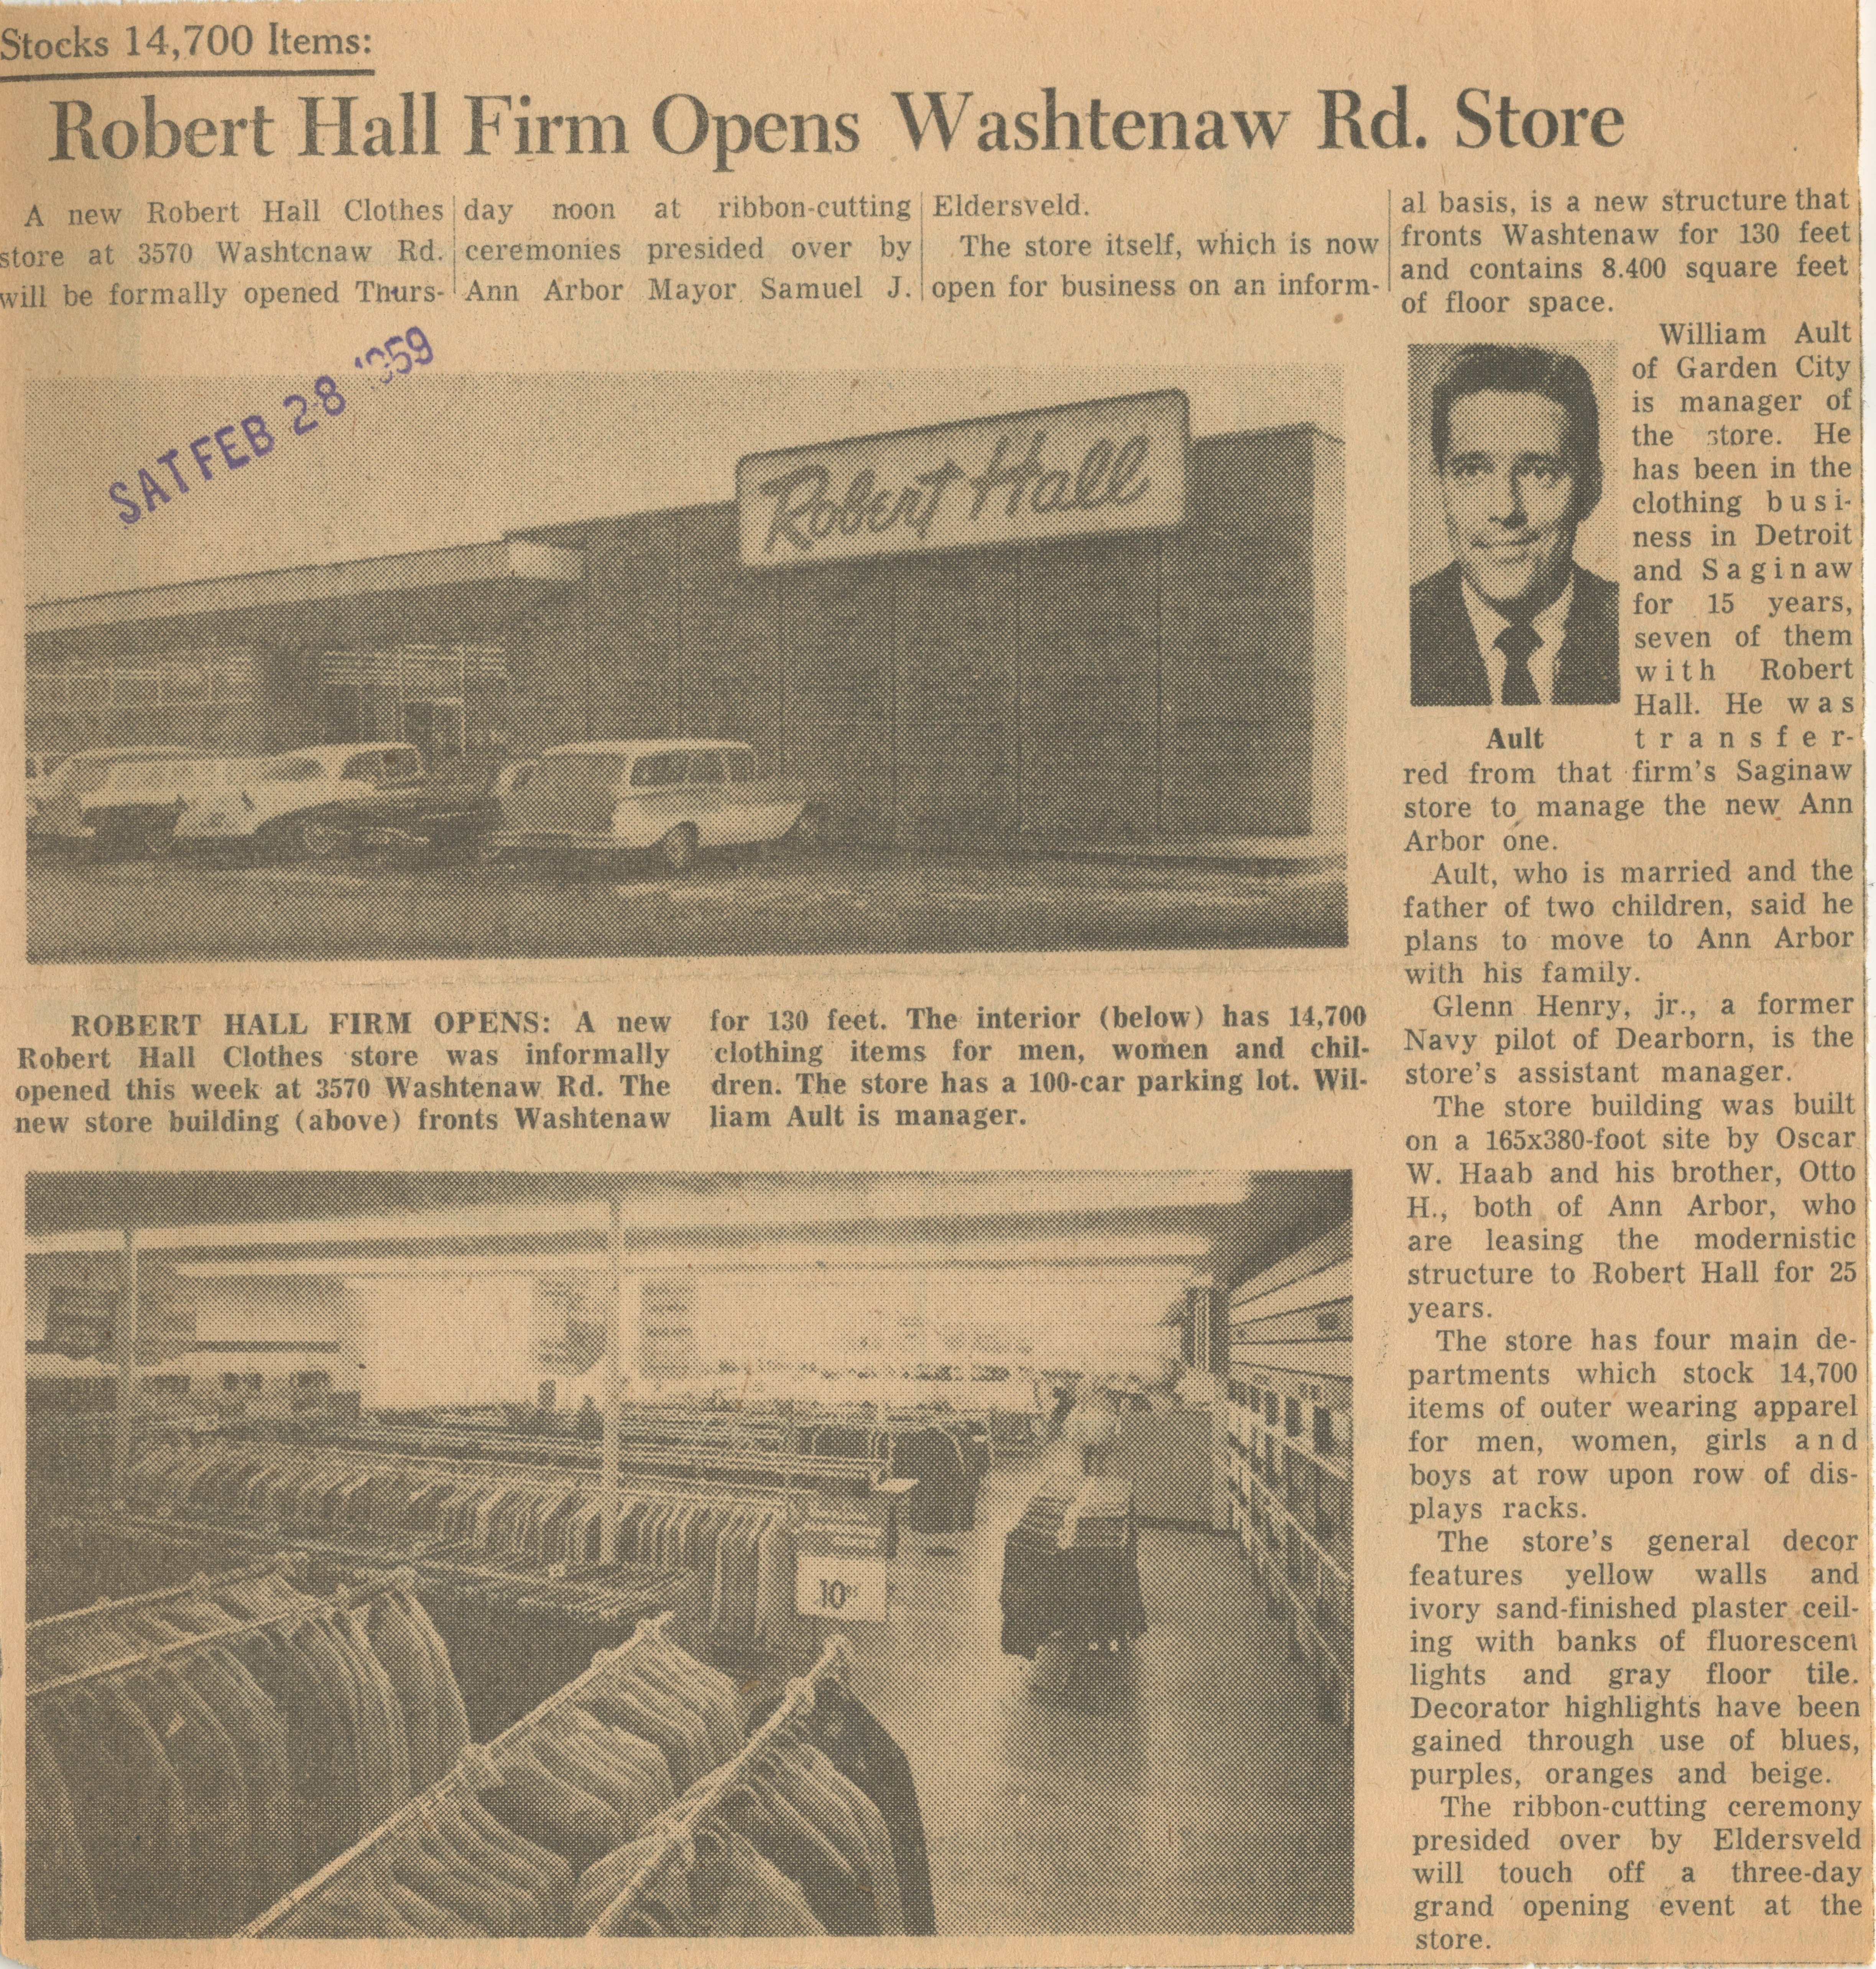 Robert Hall Firm Opens Washtenaw Rd. Store image